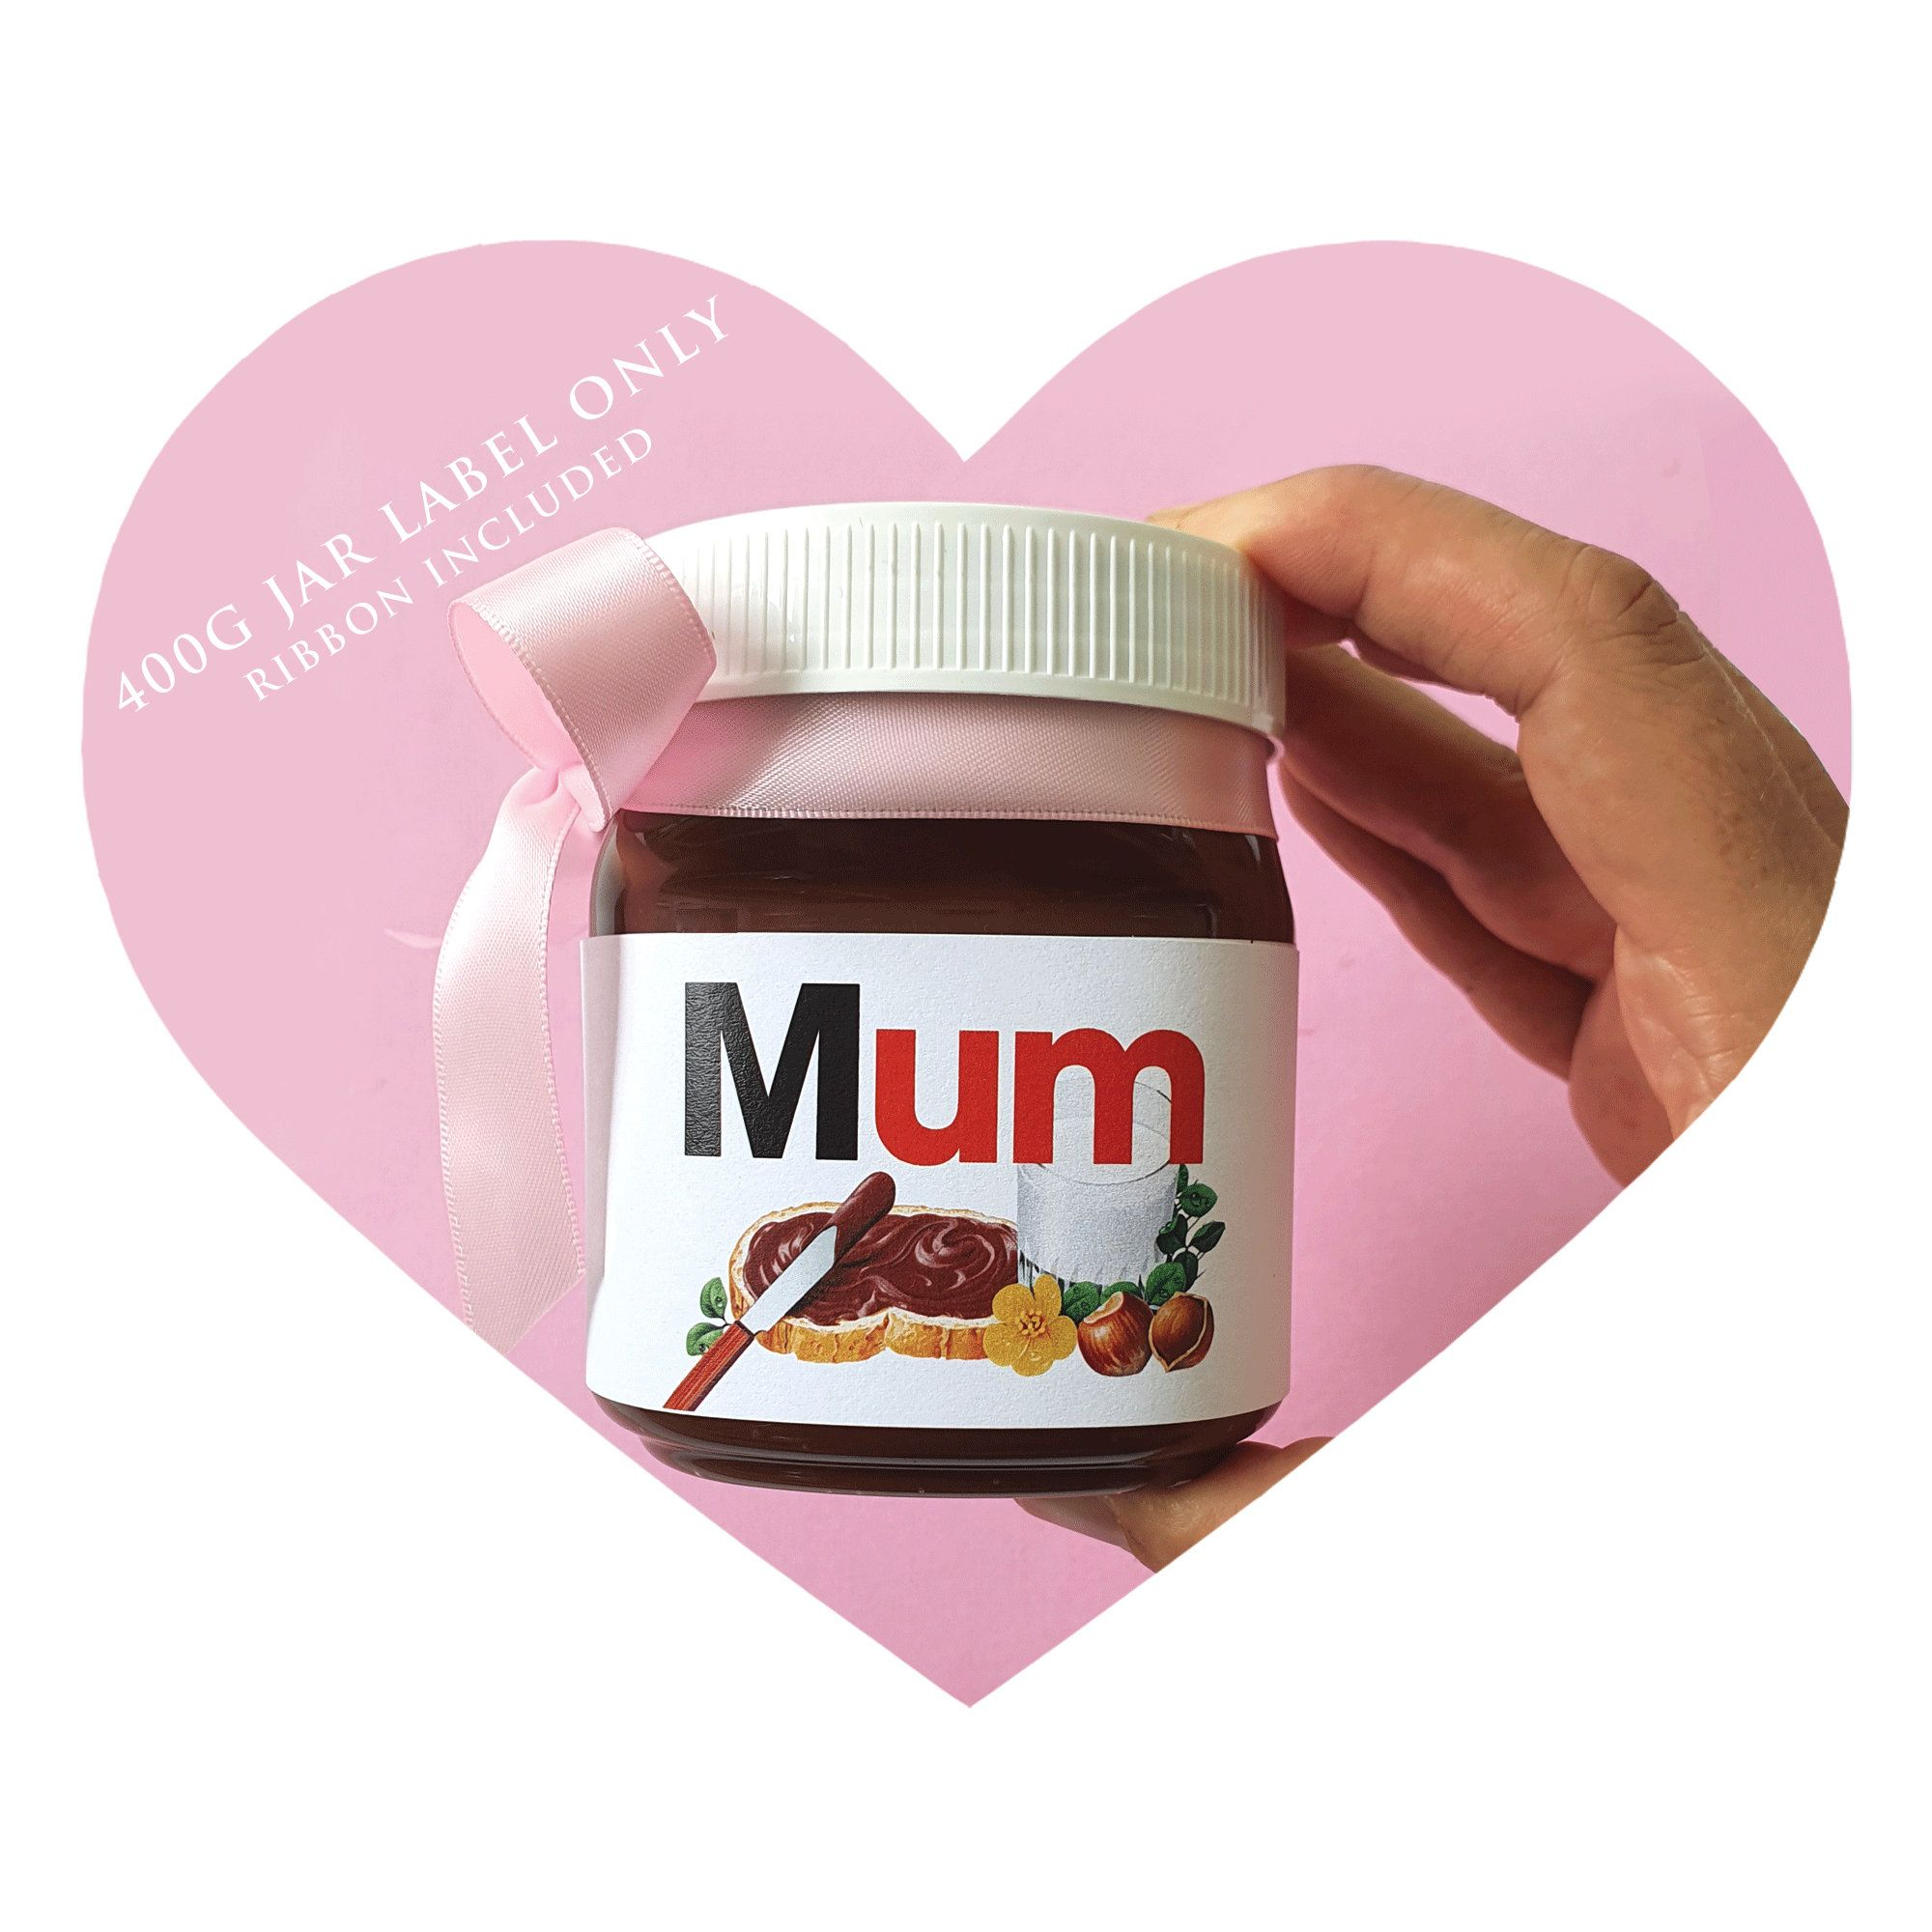 Personalised Mother S Day Gift Personalised Nutella Jar Label Personalised Personalized Mother S Day Gifts Mother S Day Gift Baskets Personalised Nutella Jar